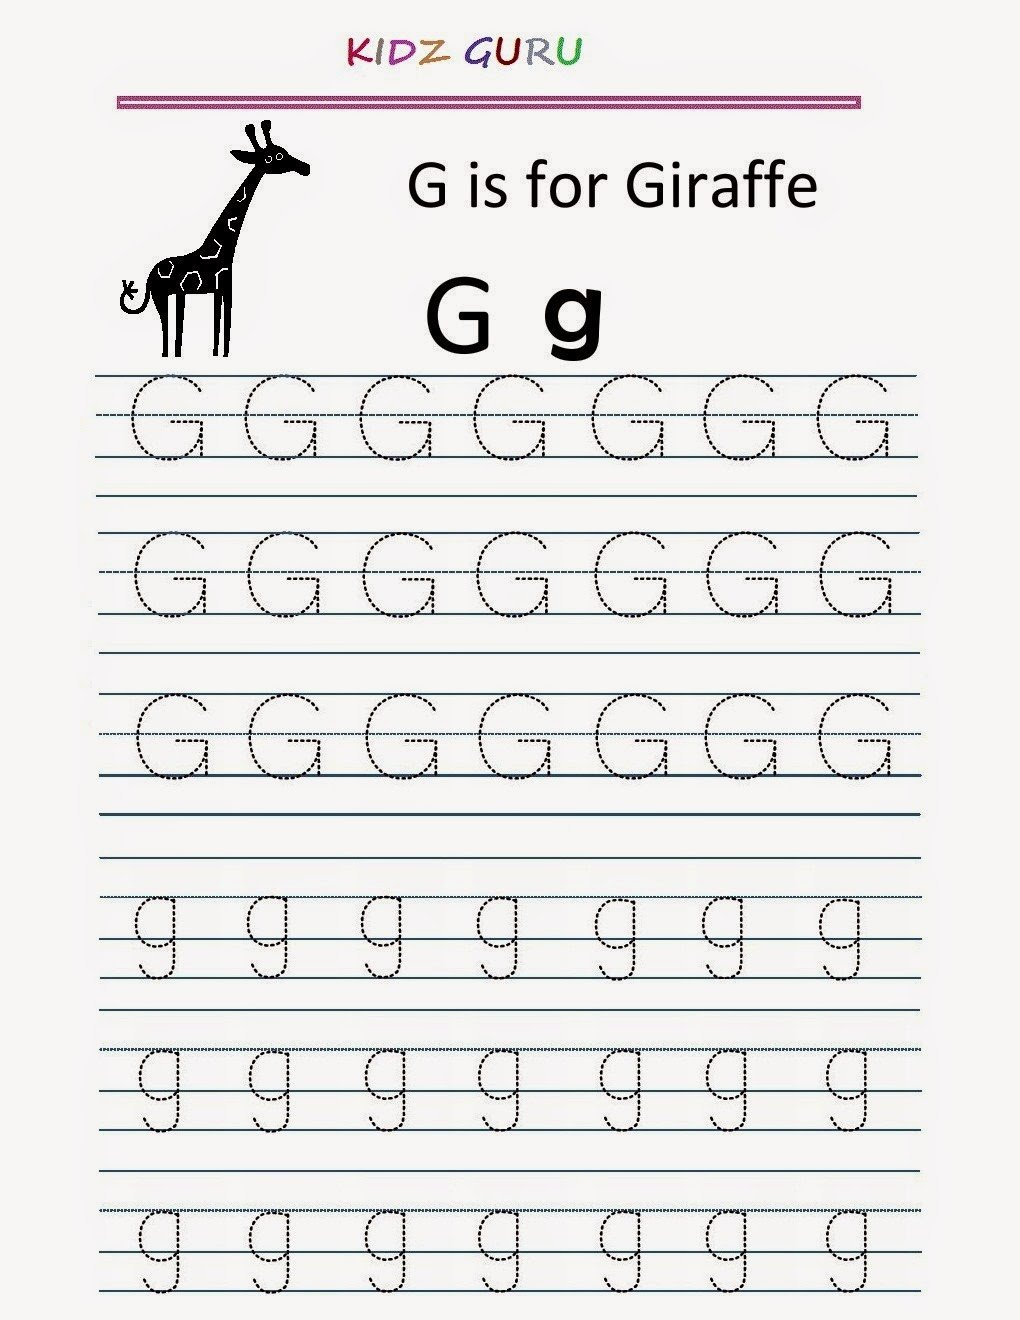 Preschool Letter G Worksheets 15 Exciting Letter G Worksheets for Kids